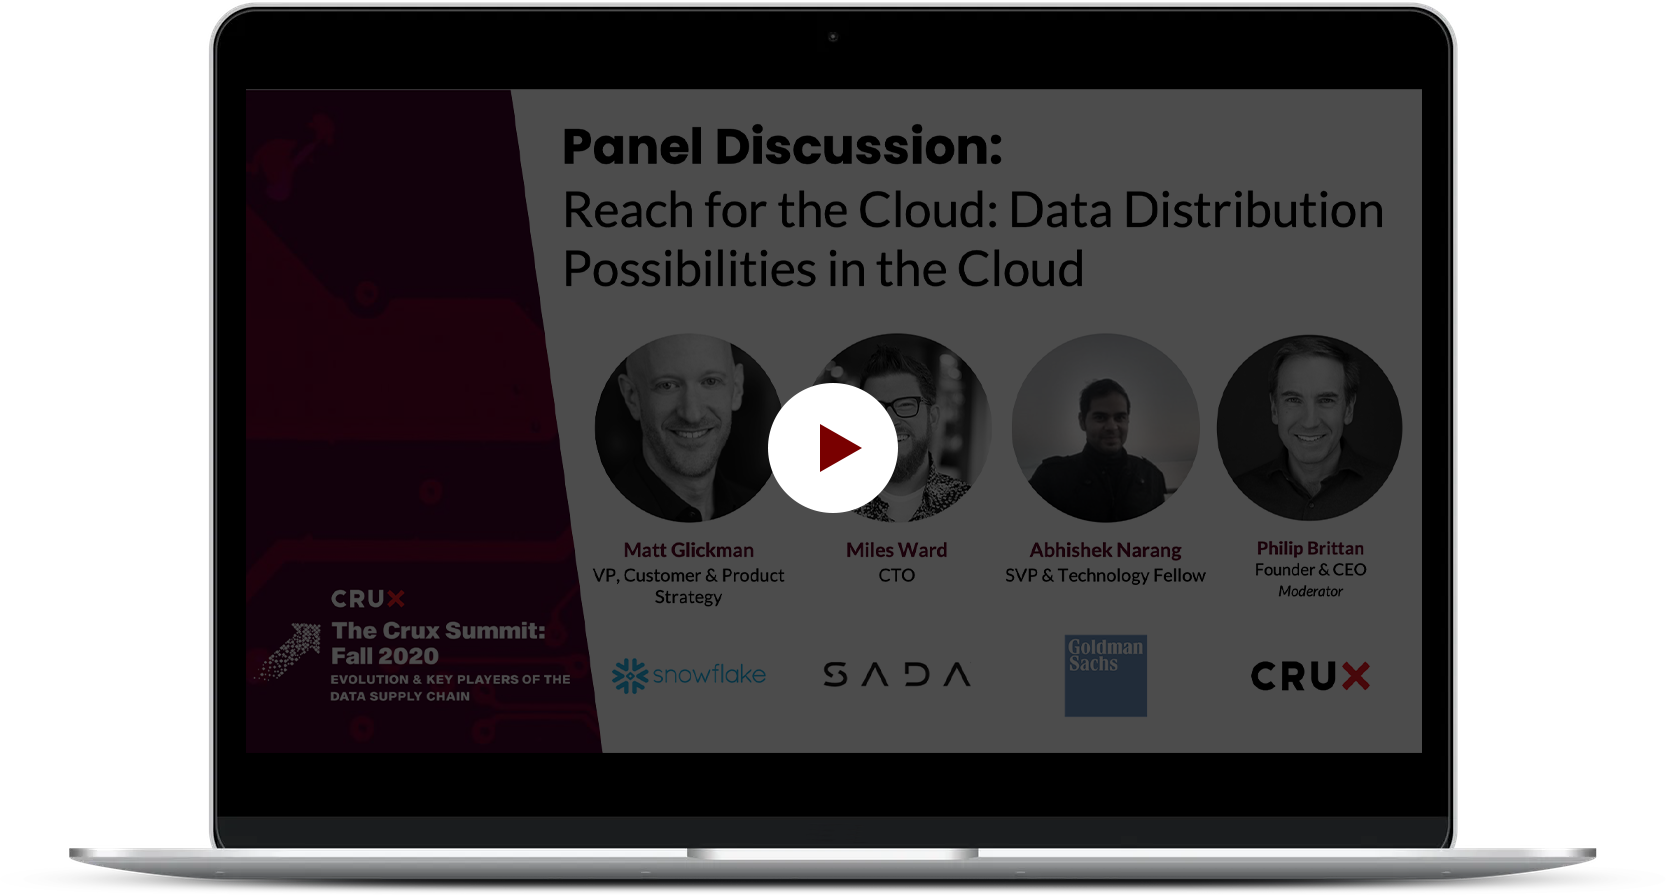 Crux_TCS_PanelDiscussion+ReachfortheCloud+DataDistributionPossbilitiesintheCloud_10